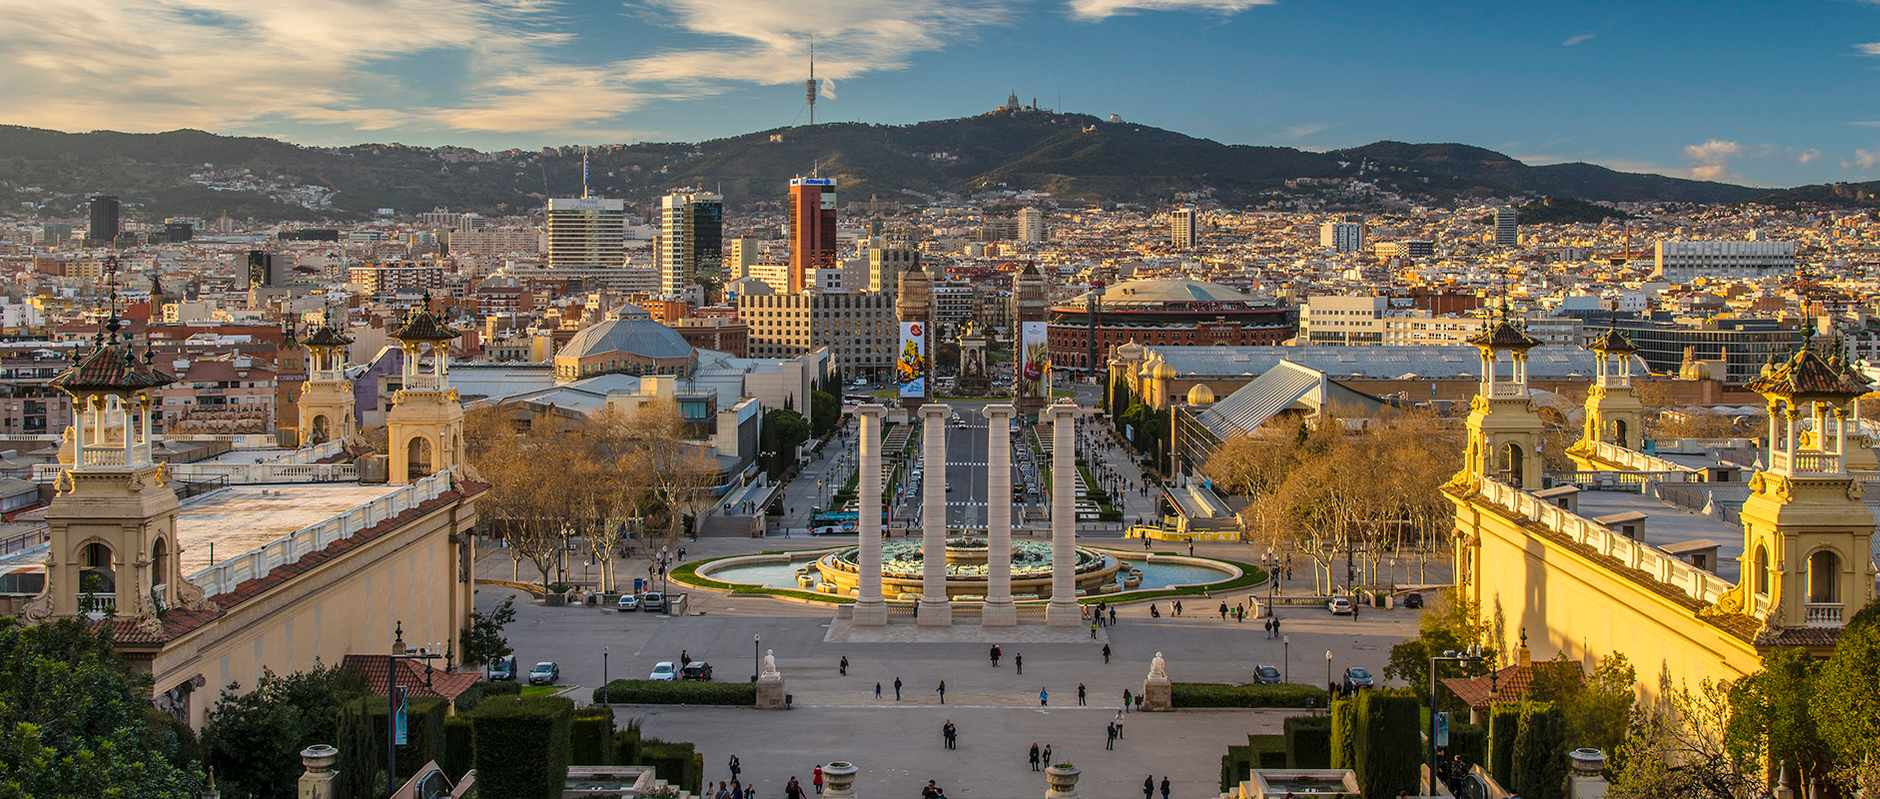 Views of the city of Barcelona